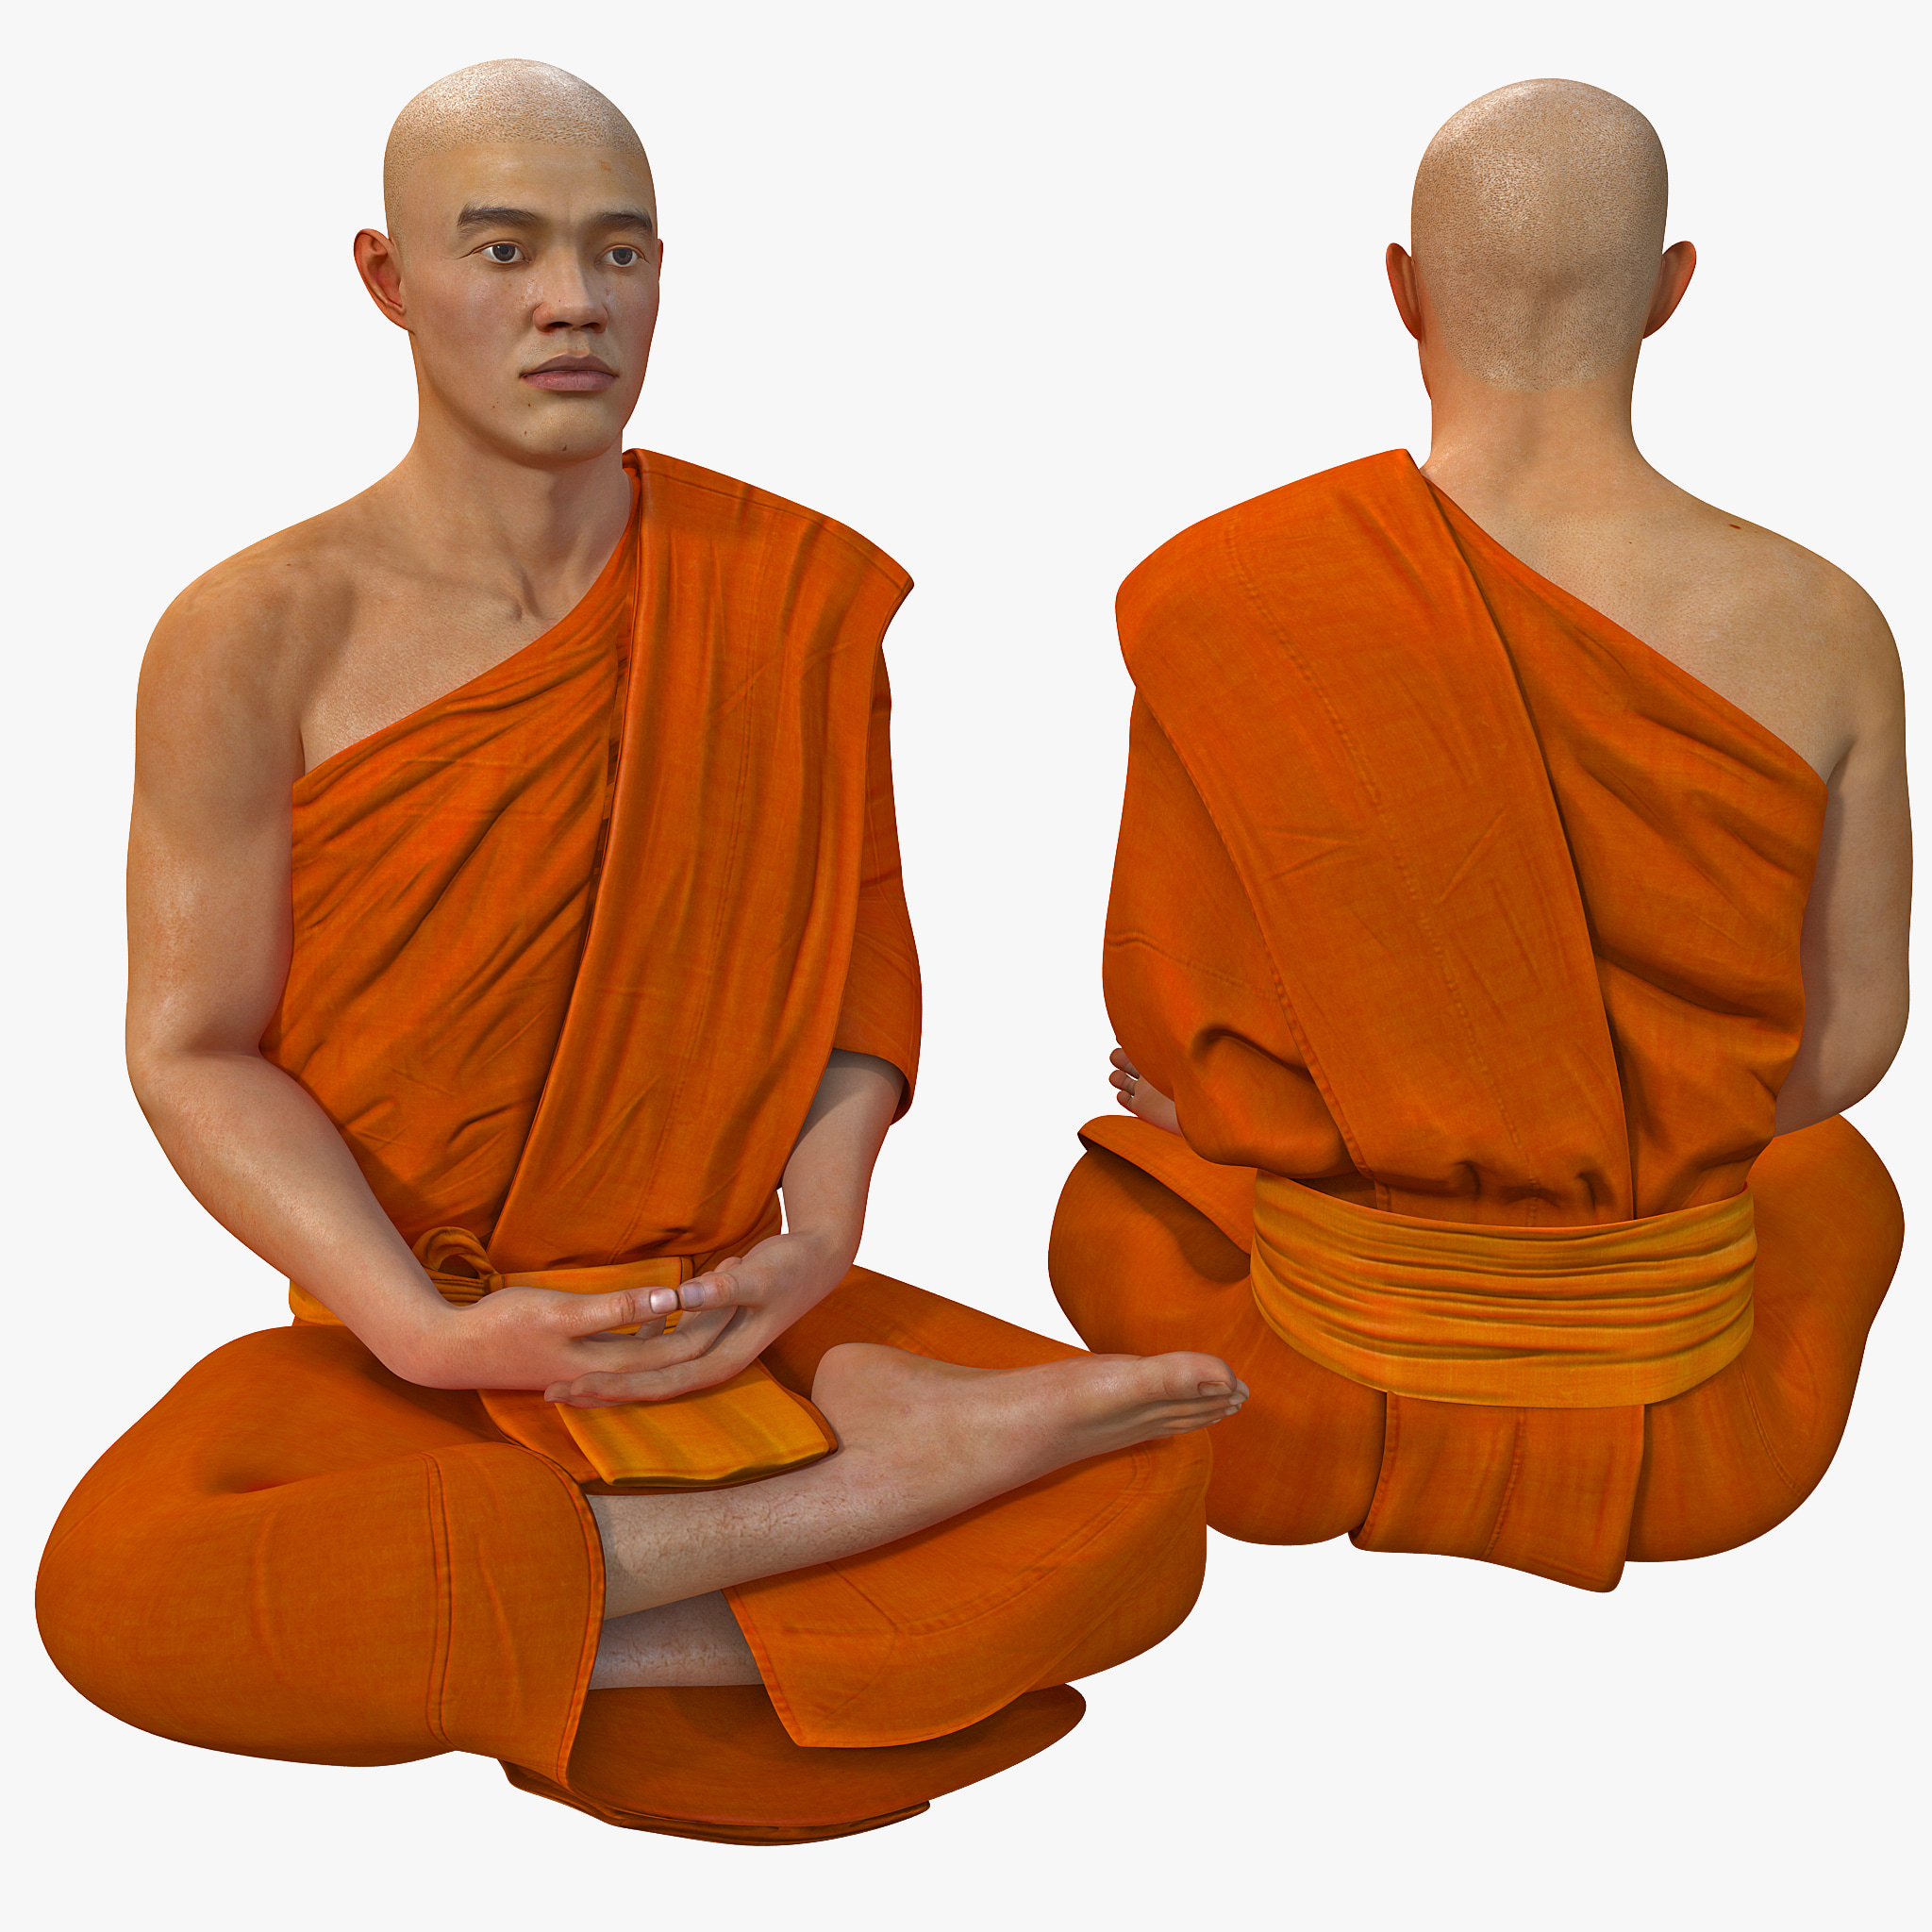 springvale buddhist single men Meet buddhist american men interested in dating there are 1000s of profiles to view for free at colombiancupidcom - join today.